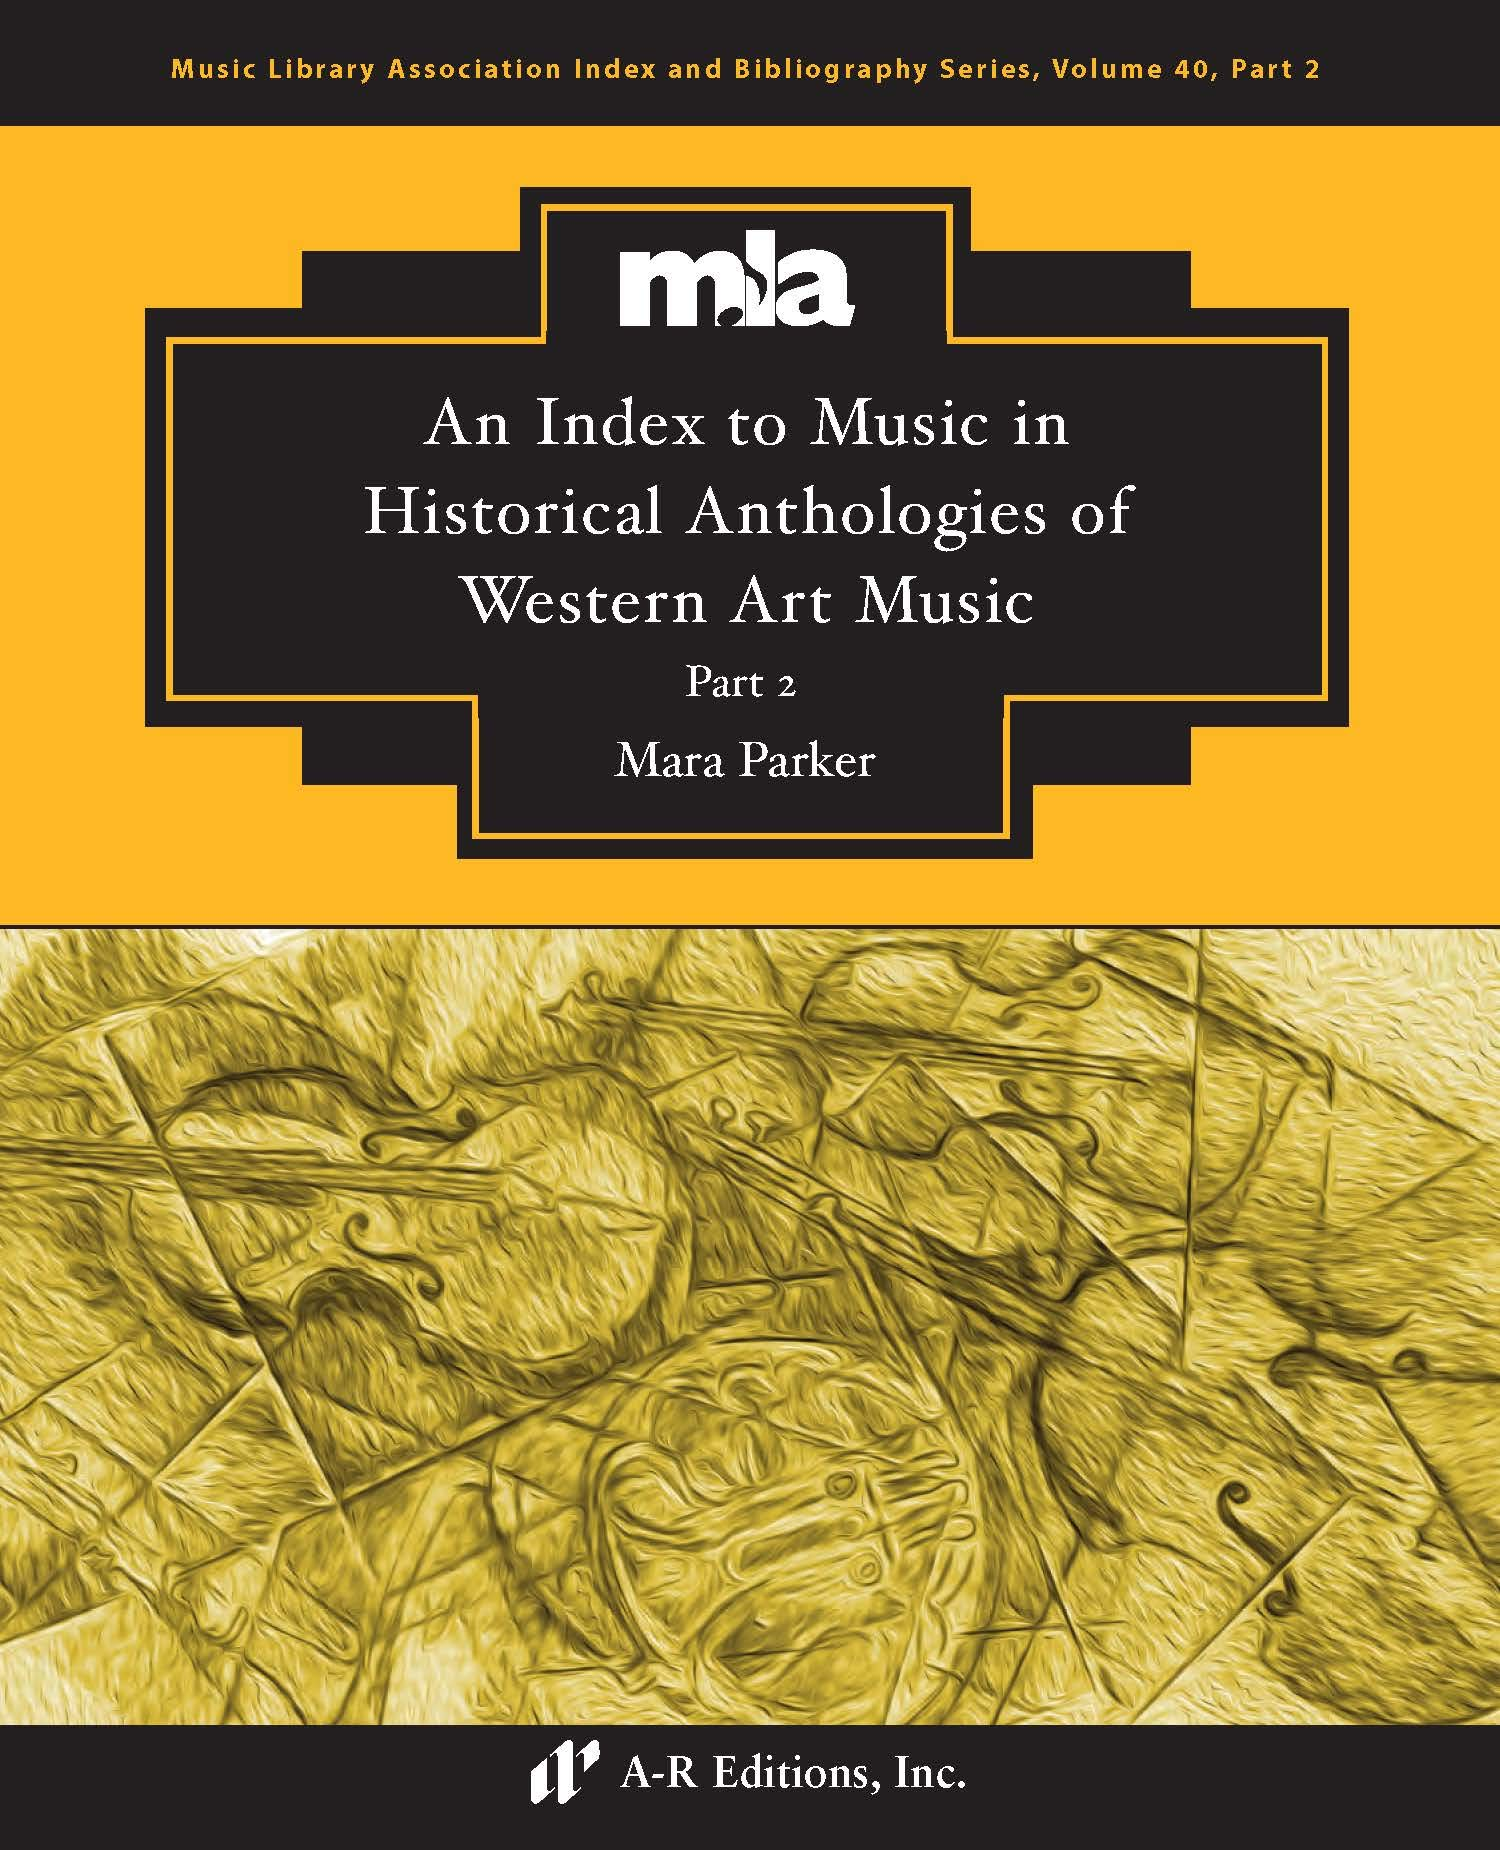 An Index to Music in Selected Historical Anthologies of